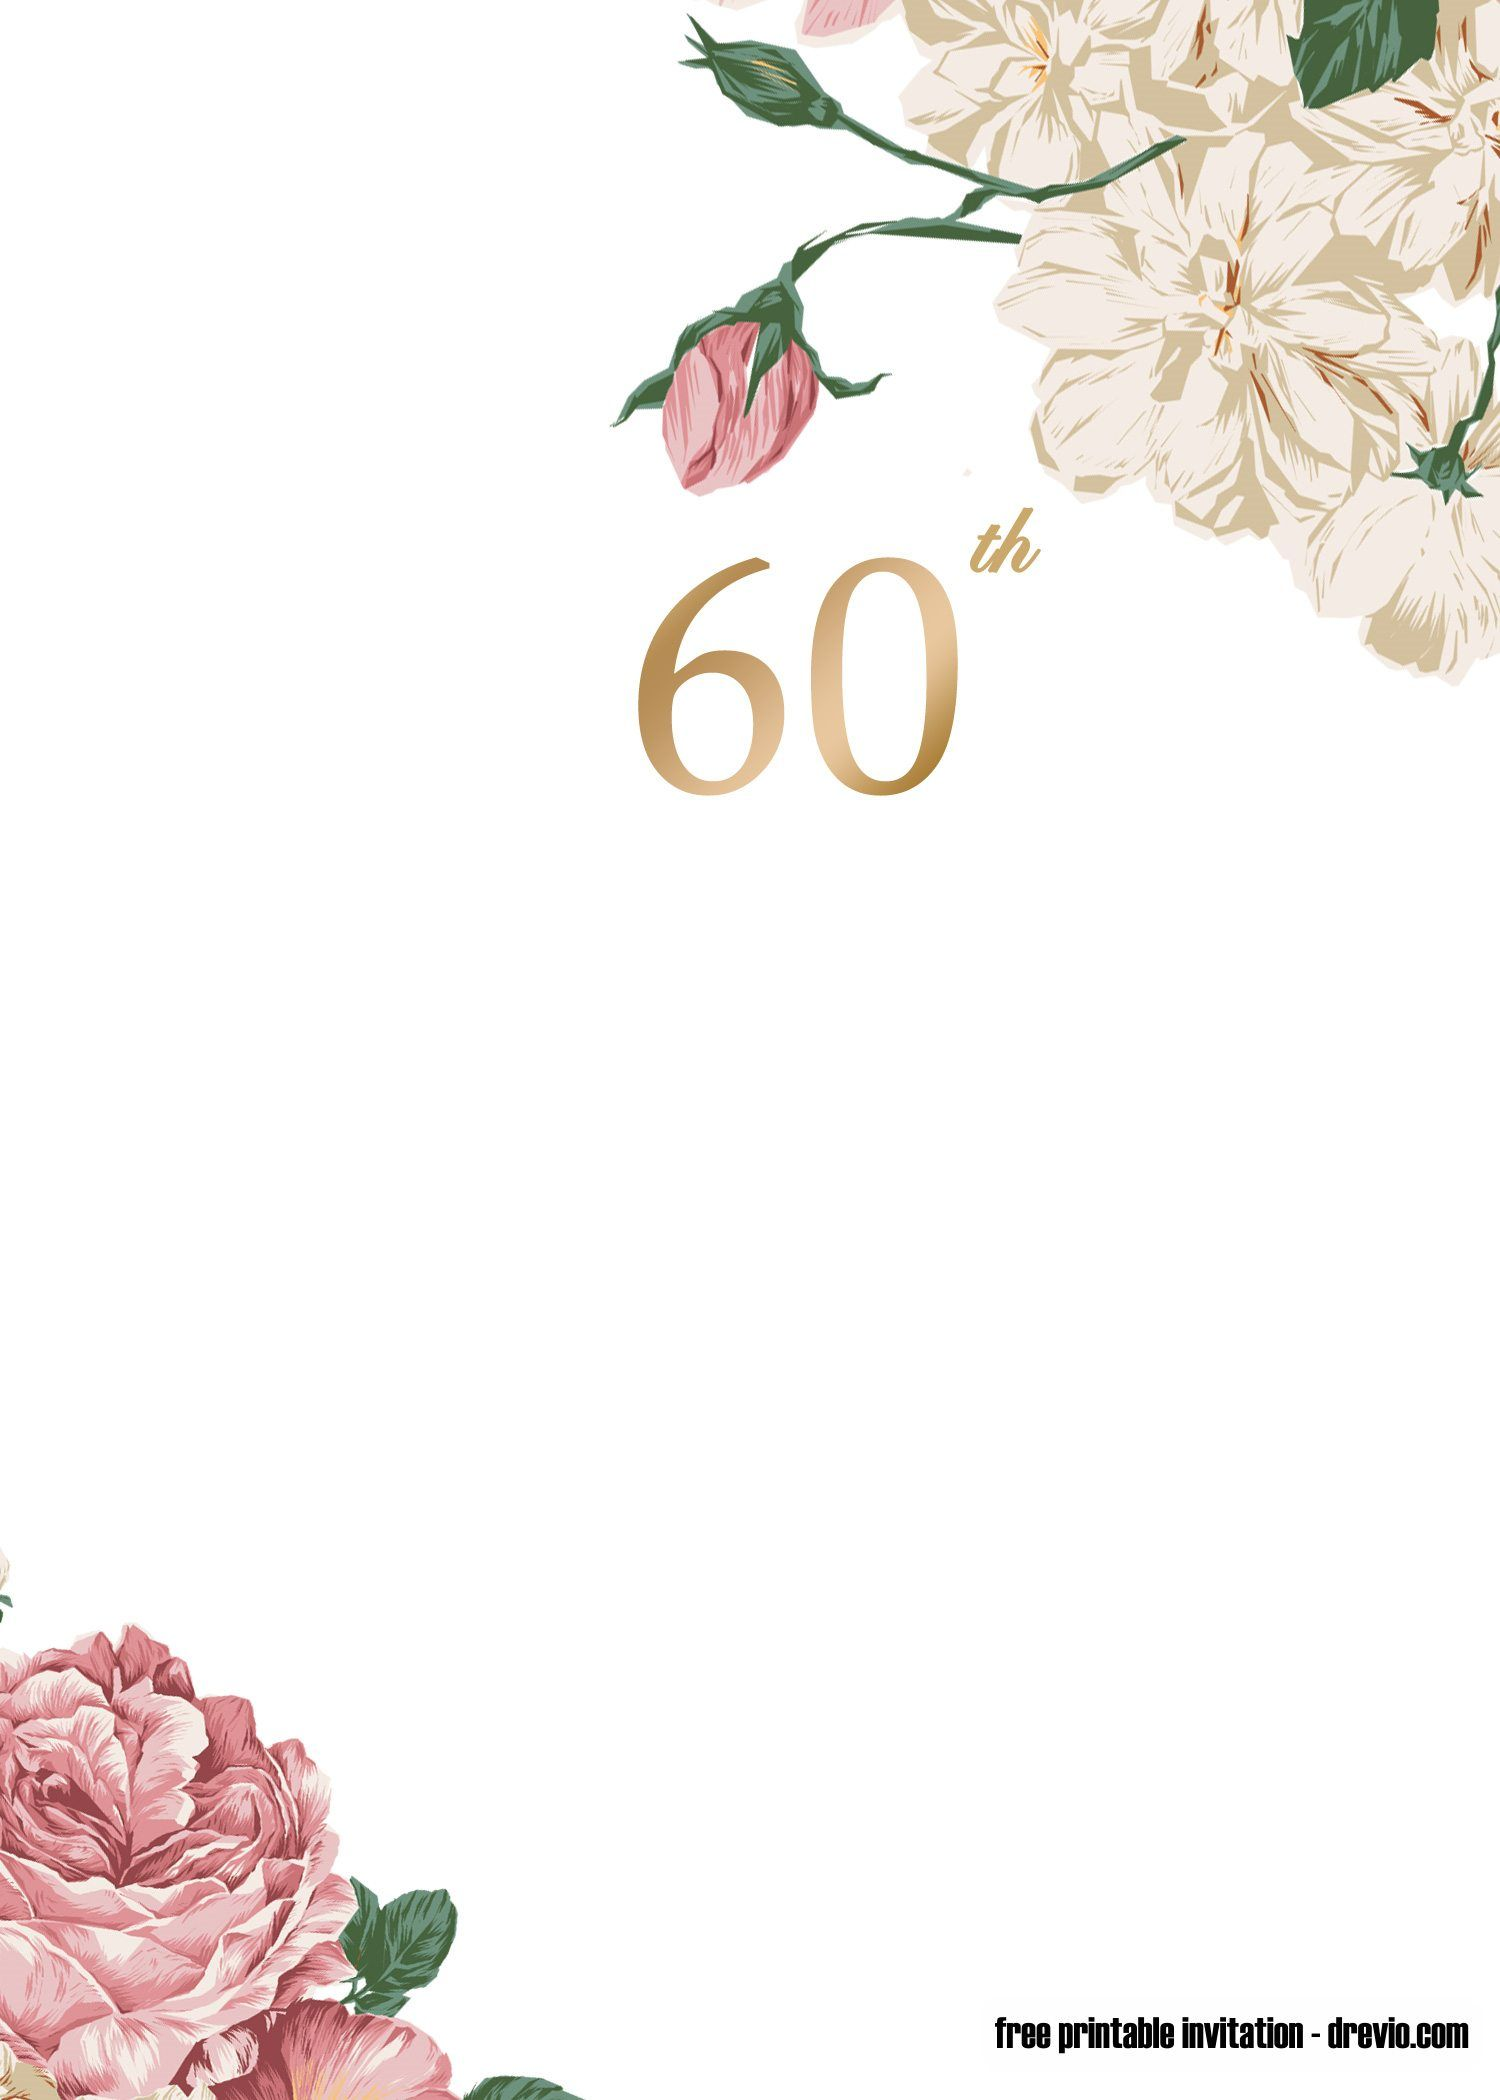 Free Printable 60th Invitation Template Latest Design Updated 60th Birthday Party Invitations 60th Birthday Invitations Birthday Party Invitation Templates